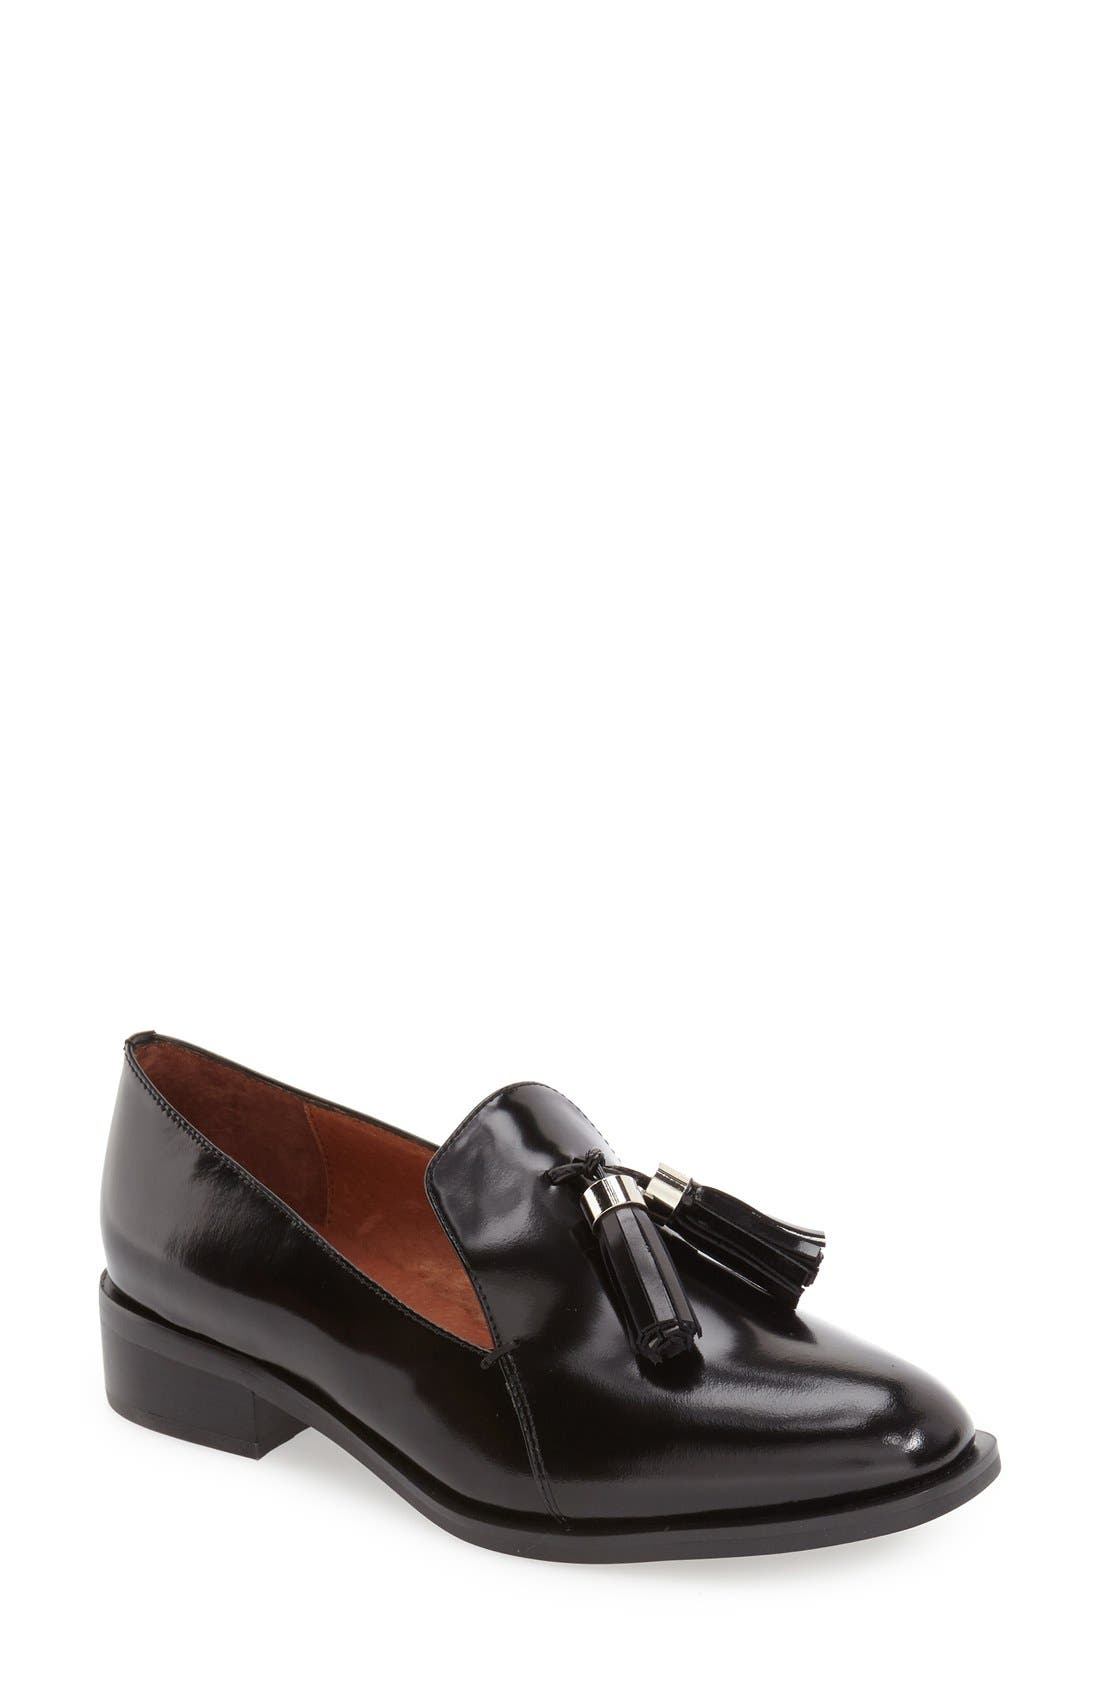 'Lawford' Tassel Loafer,                             Main thumbnail 3, color,